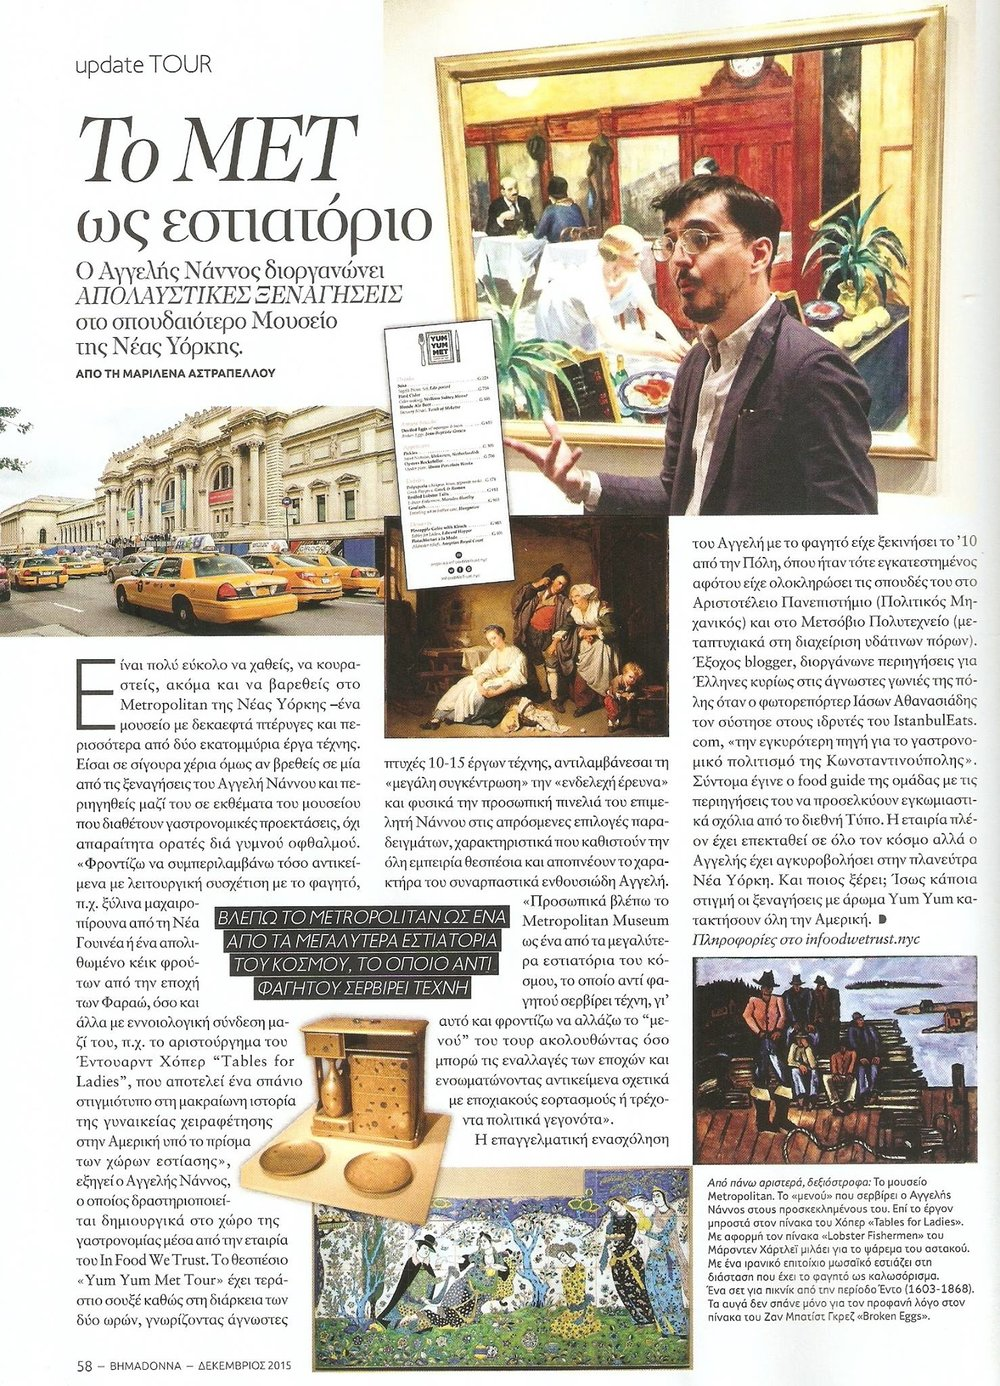 delicious tours at the biggest museum of nyc - Vima Donna Magazine (in Greek)